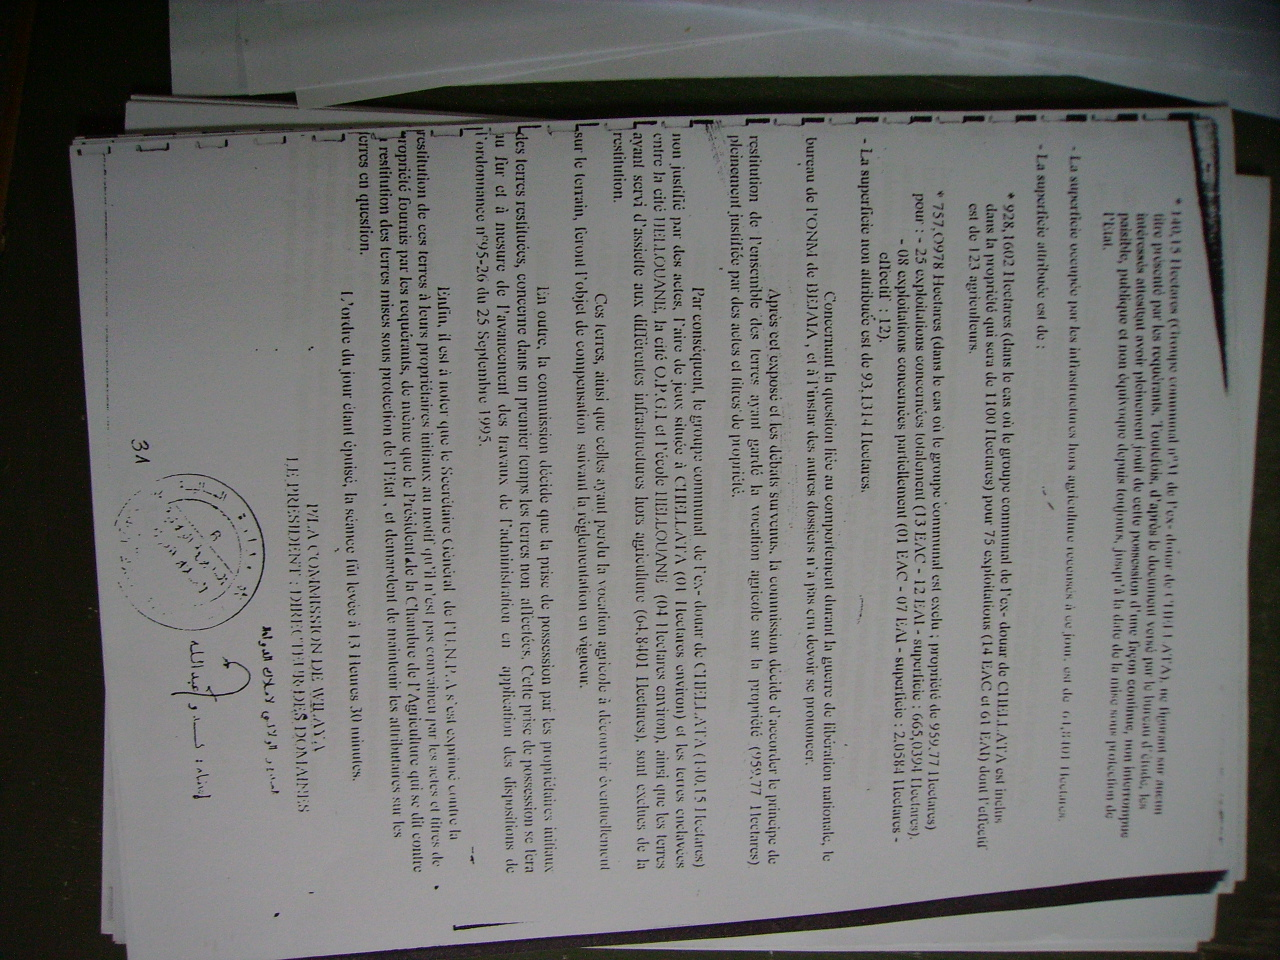 pvrunioncommissionrestitution01061998p4.jpg